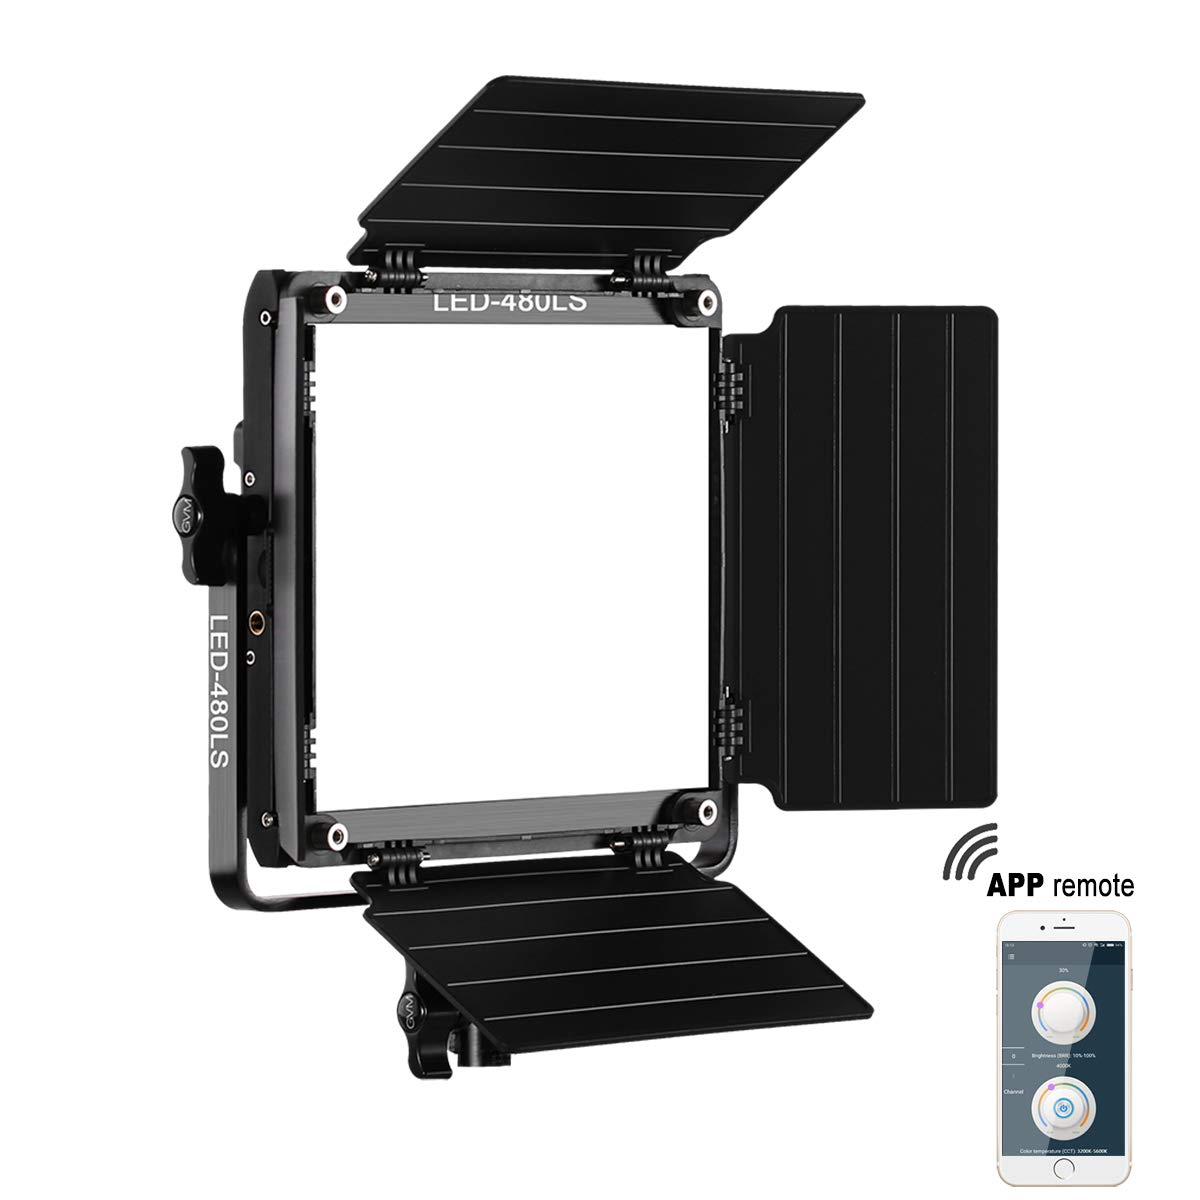 GVM Led Bi-Color Video Lights with APP Function, Variable CCT 2300K-6800K and 10%-100% Brightness with Digital Display for Video Studio Shooting, CRI97+ TLCI97 Led Light Panel +Barndoor by GVM Great Video Maker